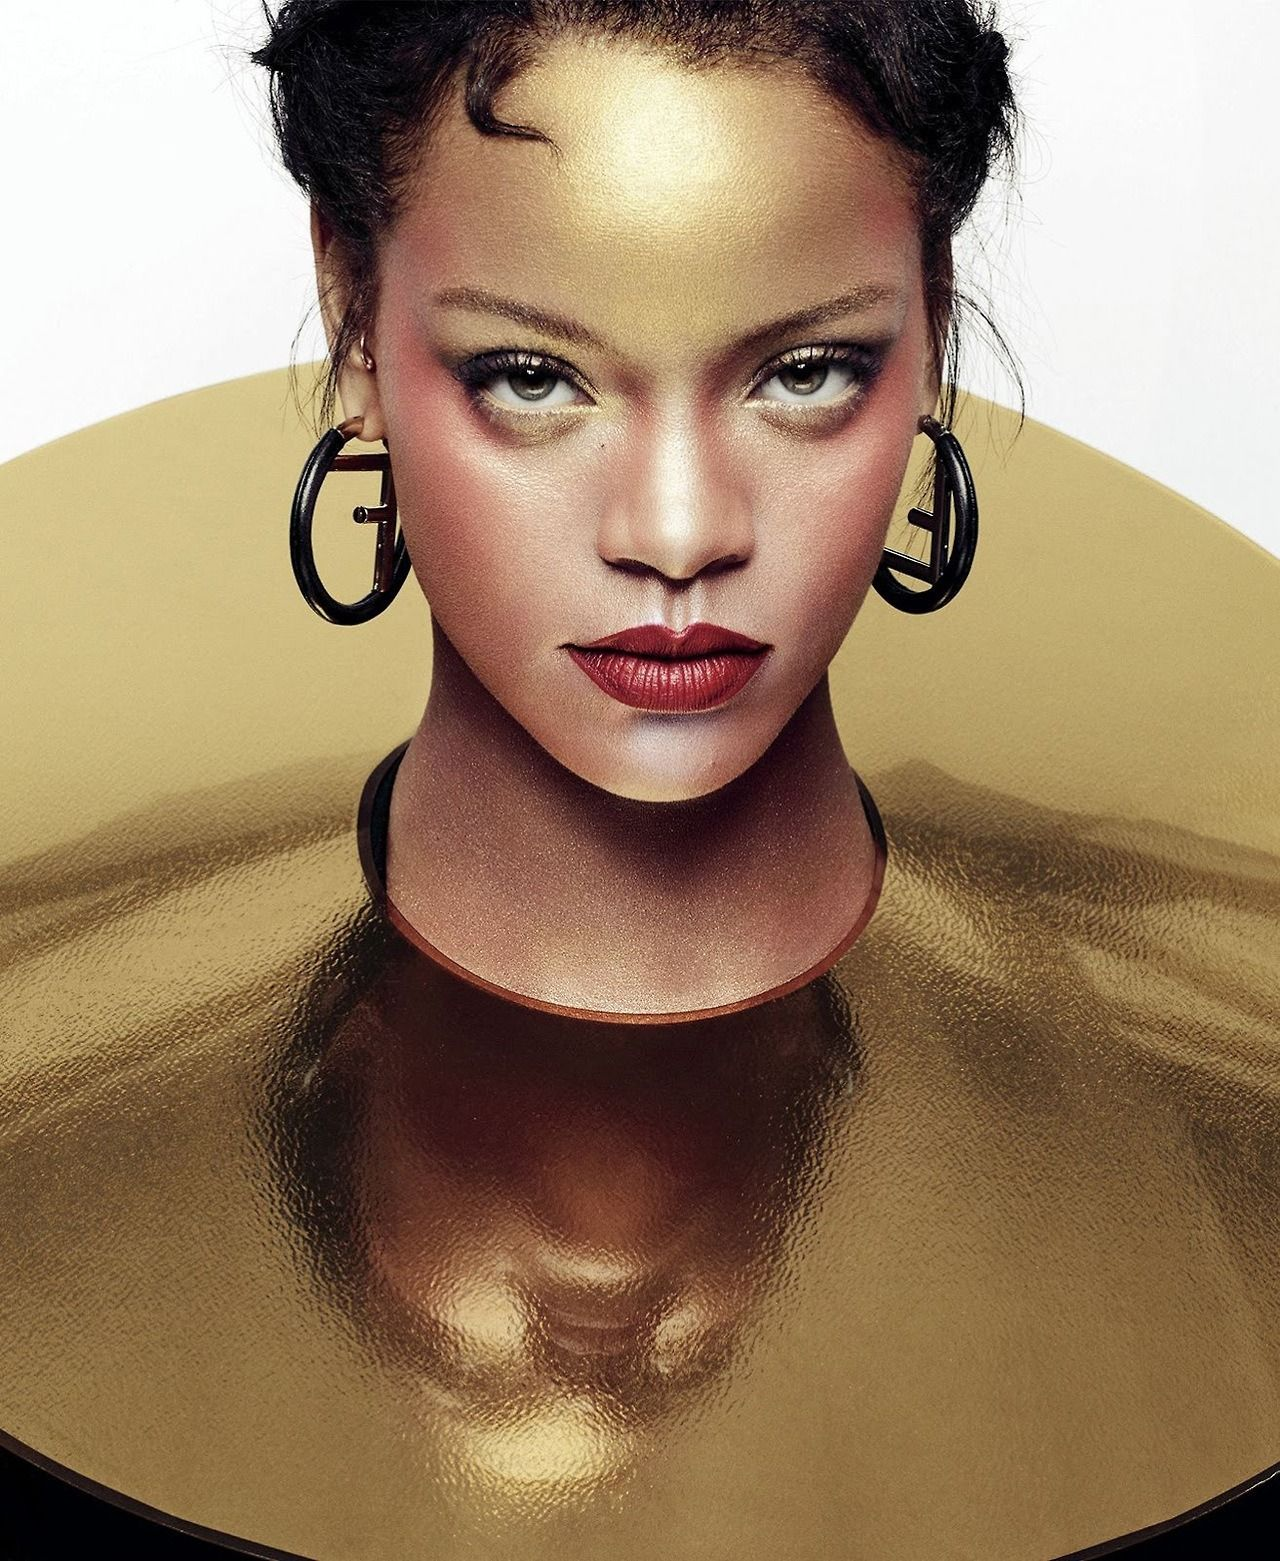 fenty beauty publication harper s bazaar us october 2017 model rihanna photographer solve sundsbo fashion editor david vandewal hair yusef williams